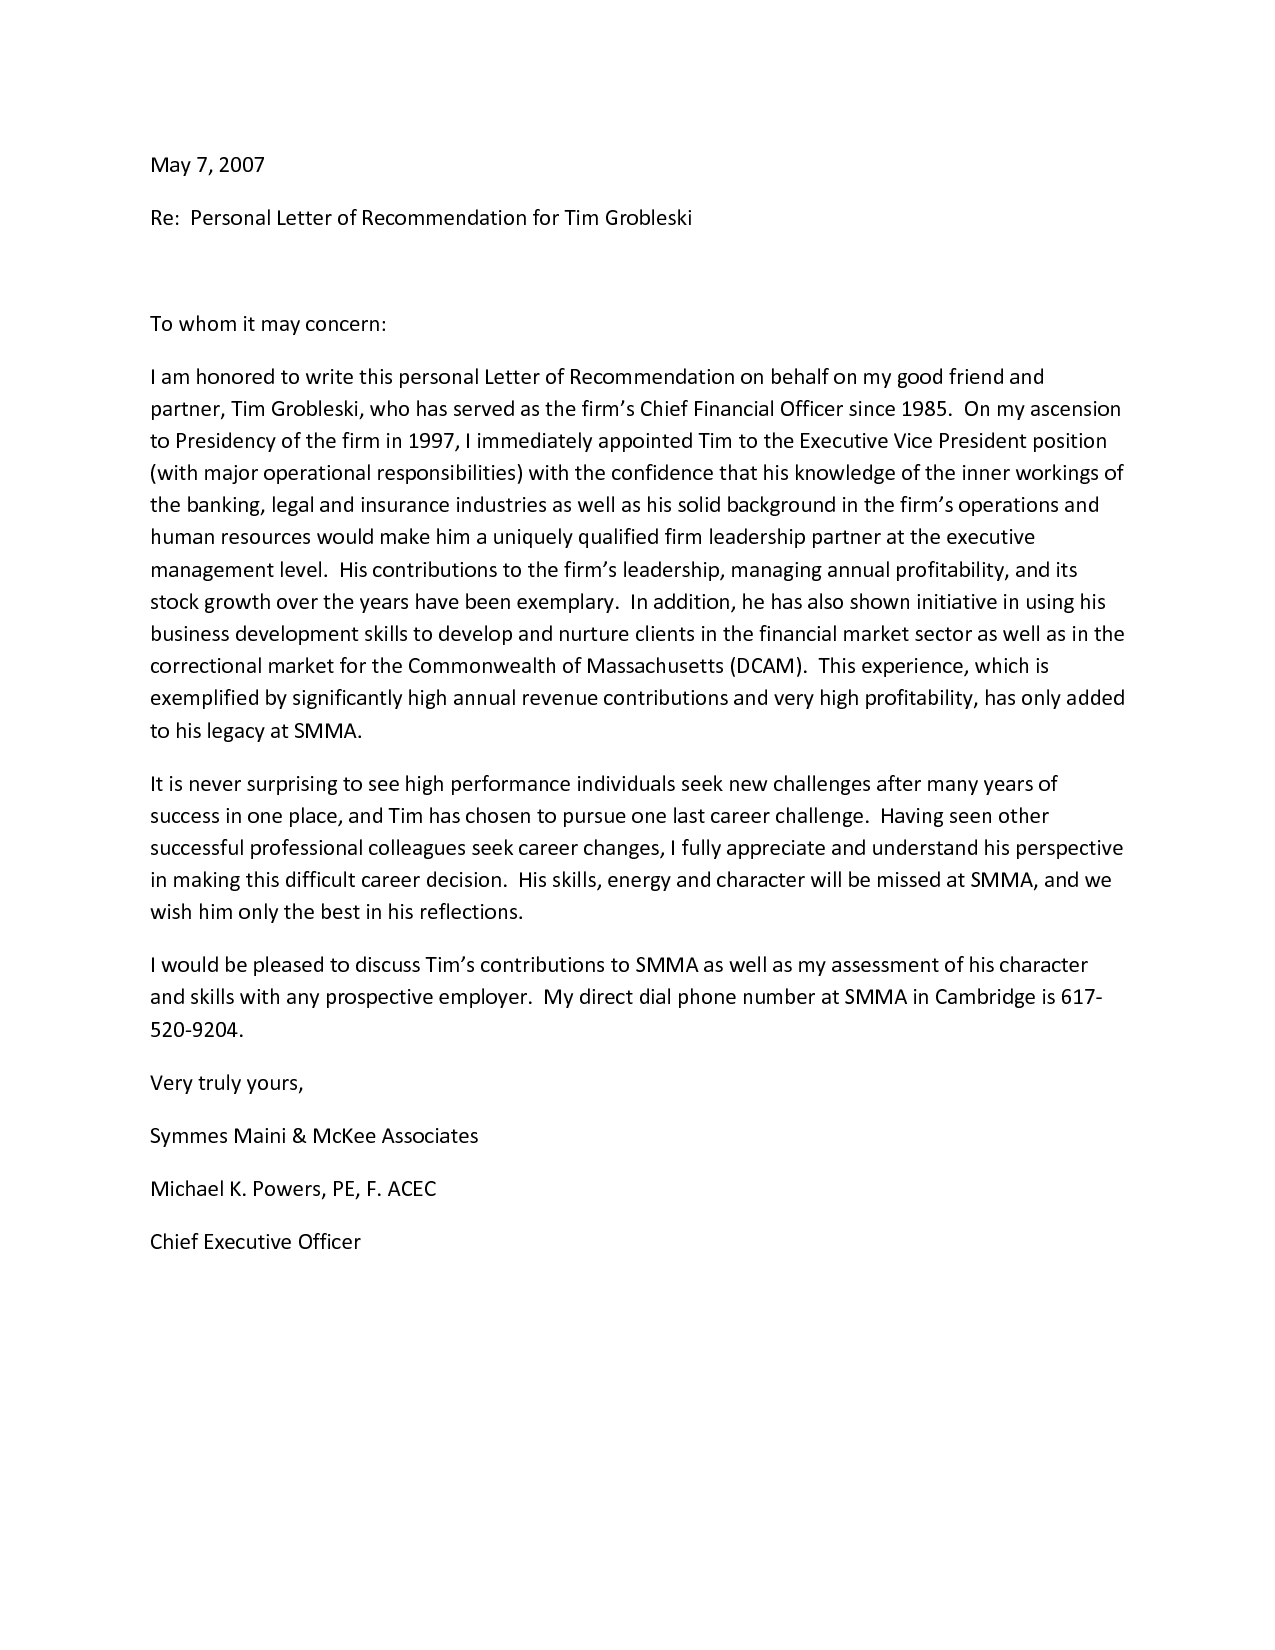 Recommendation Letter For A Friend Template SeeabruzzoPersonal – Recommendation Letter for a Friend